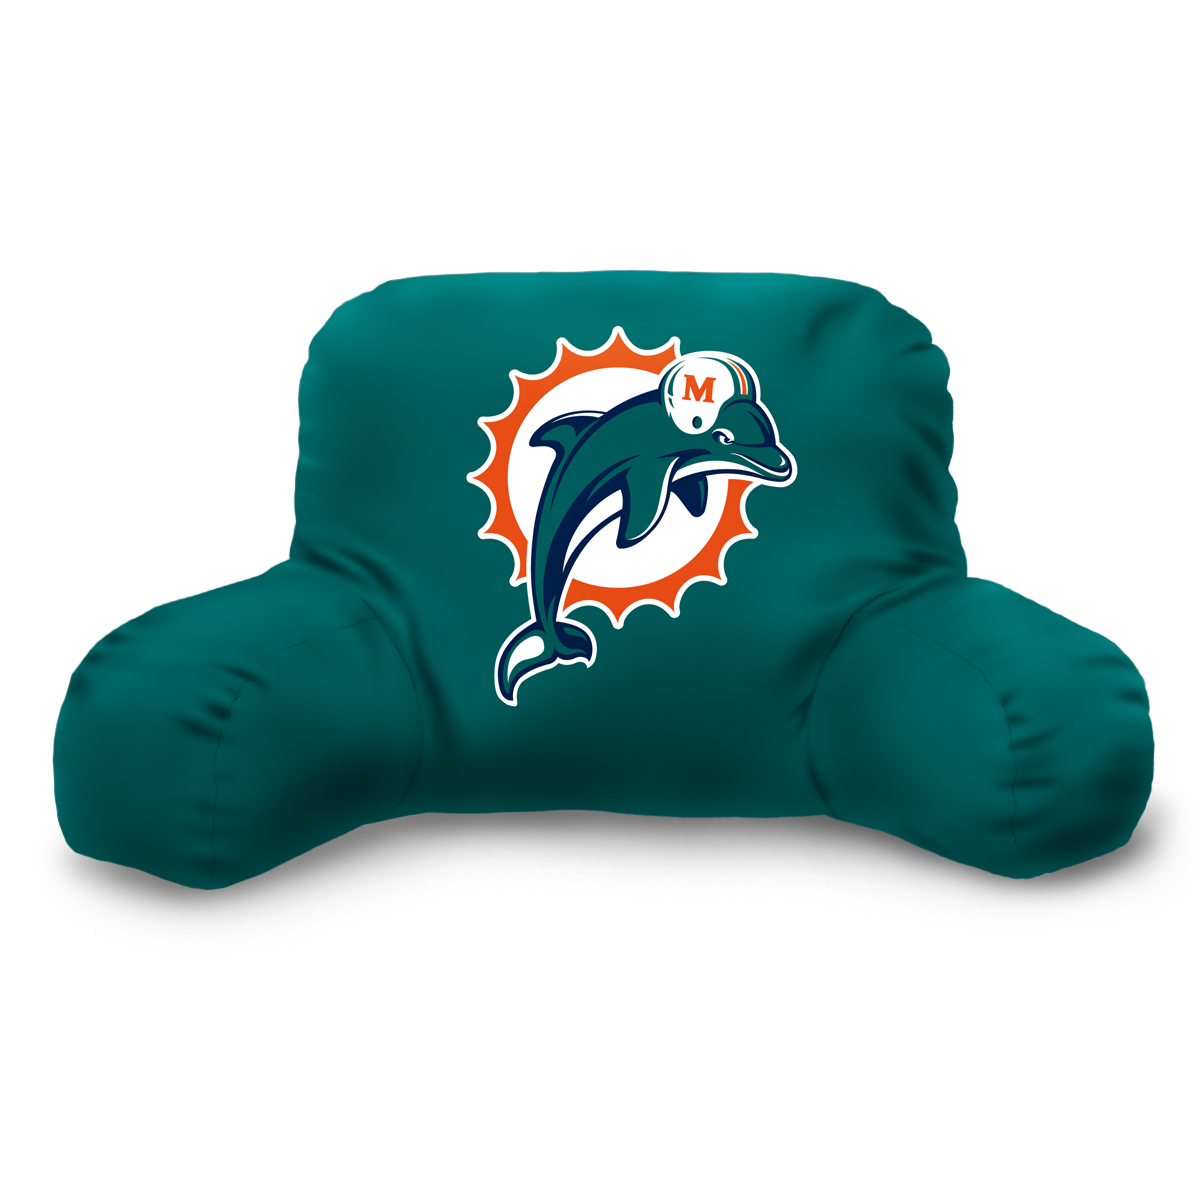 Alluring Backrest Pillow with Arms for Living Room Interior Ideas: New Green Dolphin Logo Backrest Pillow With Arms